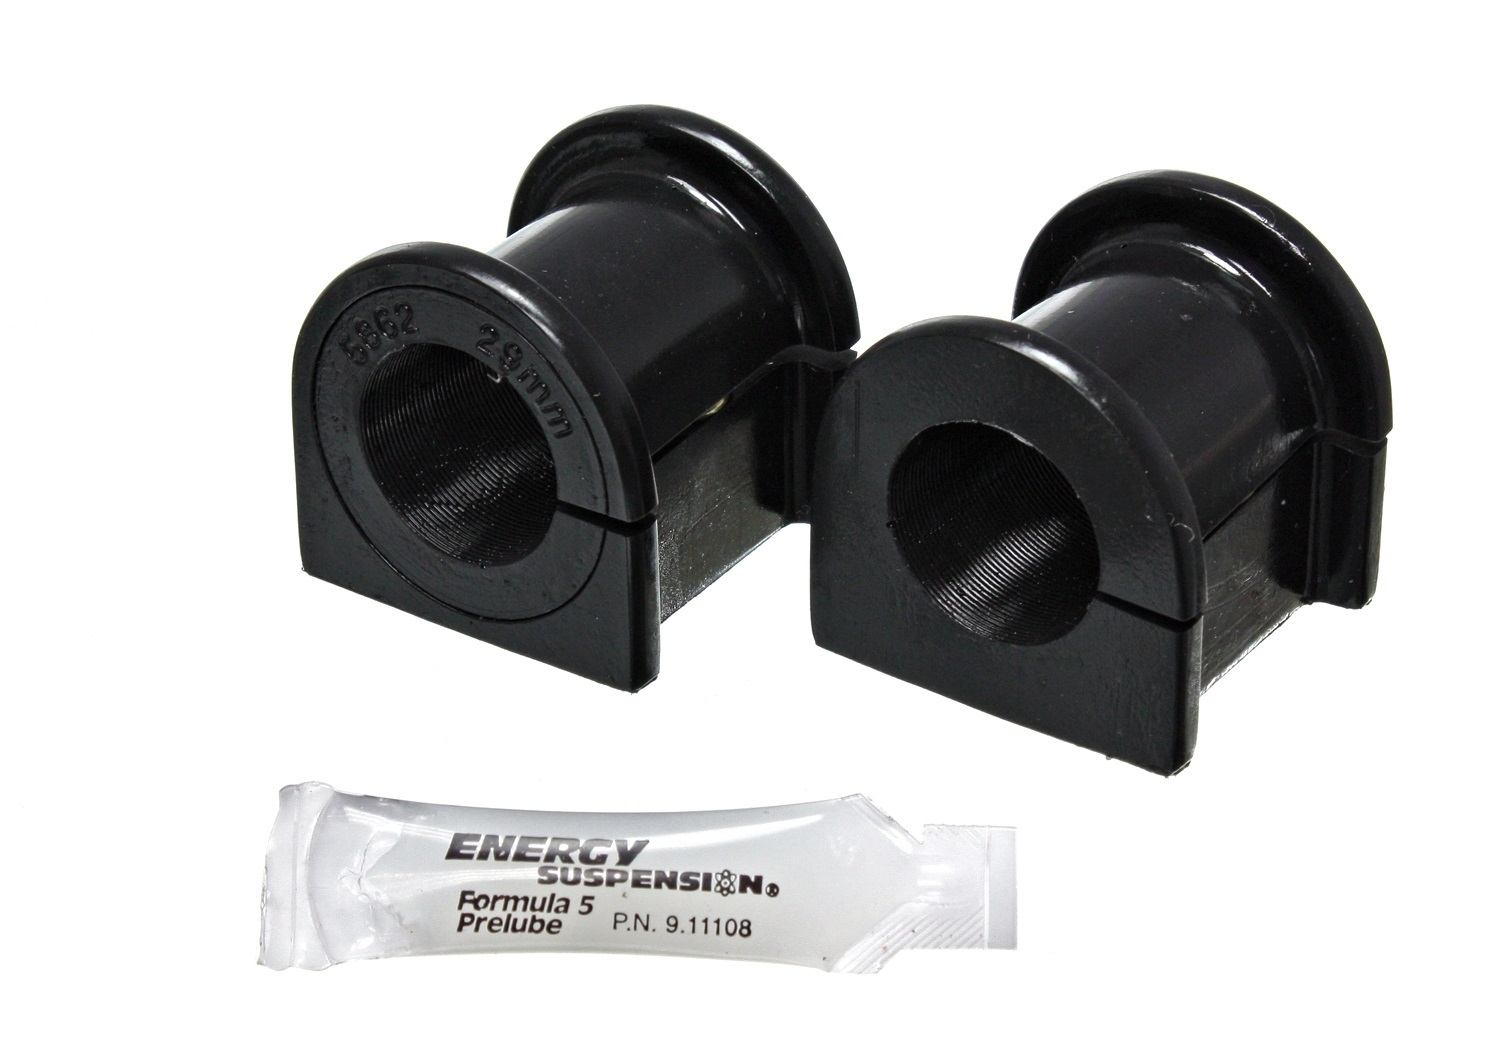 Energy Suspension 8-5135G Sway Bar Bushing, Hyper-Flex, Front, 29 mm Bar, Polyurethane, Black, Lexus GX470 / Toyota 4Runner / FJ Cruiser 2003-08, Pair